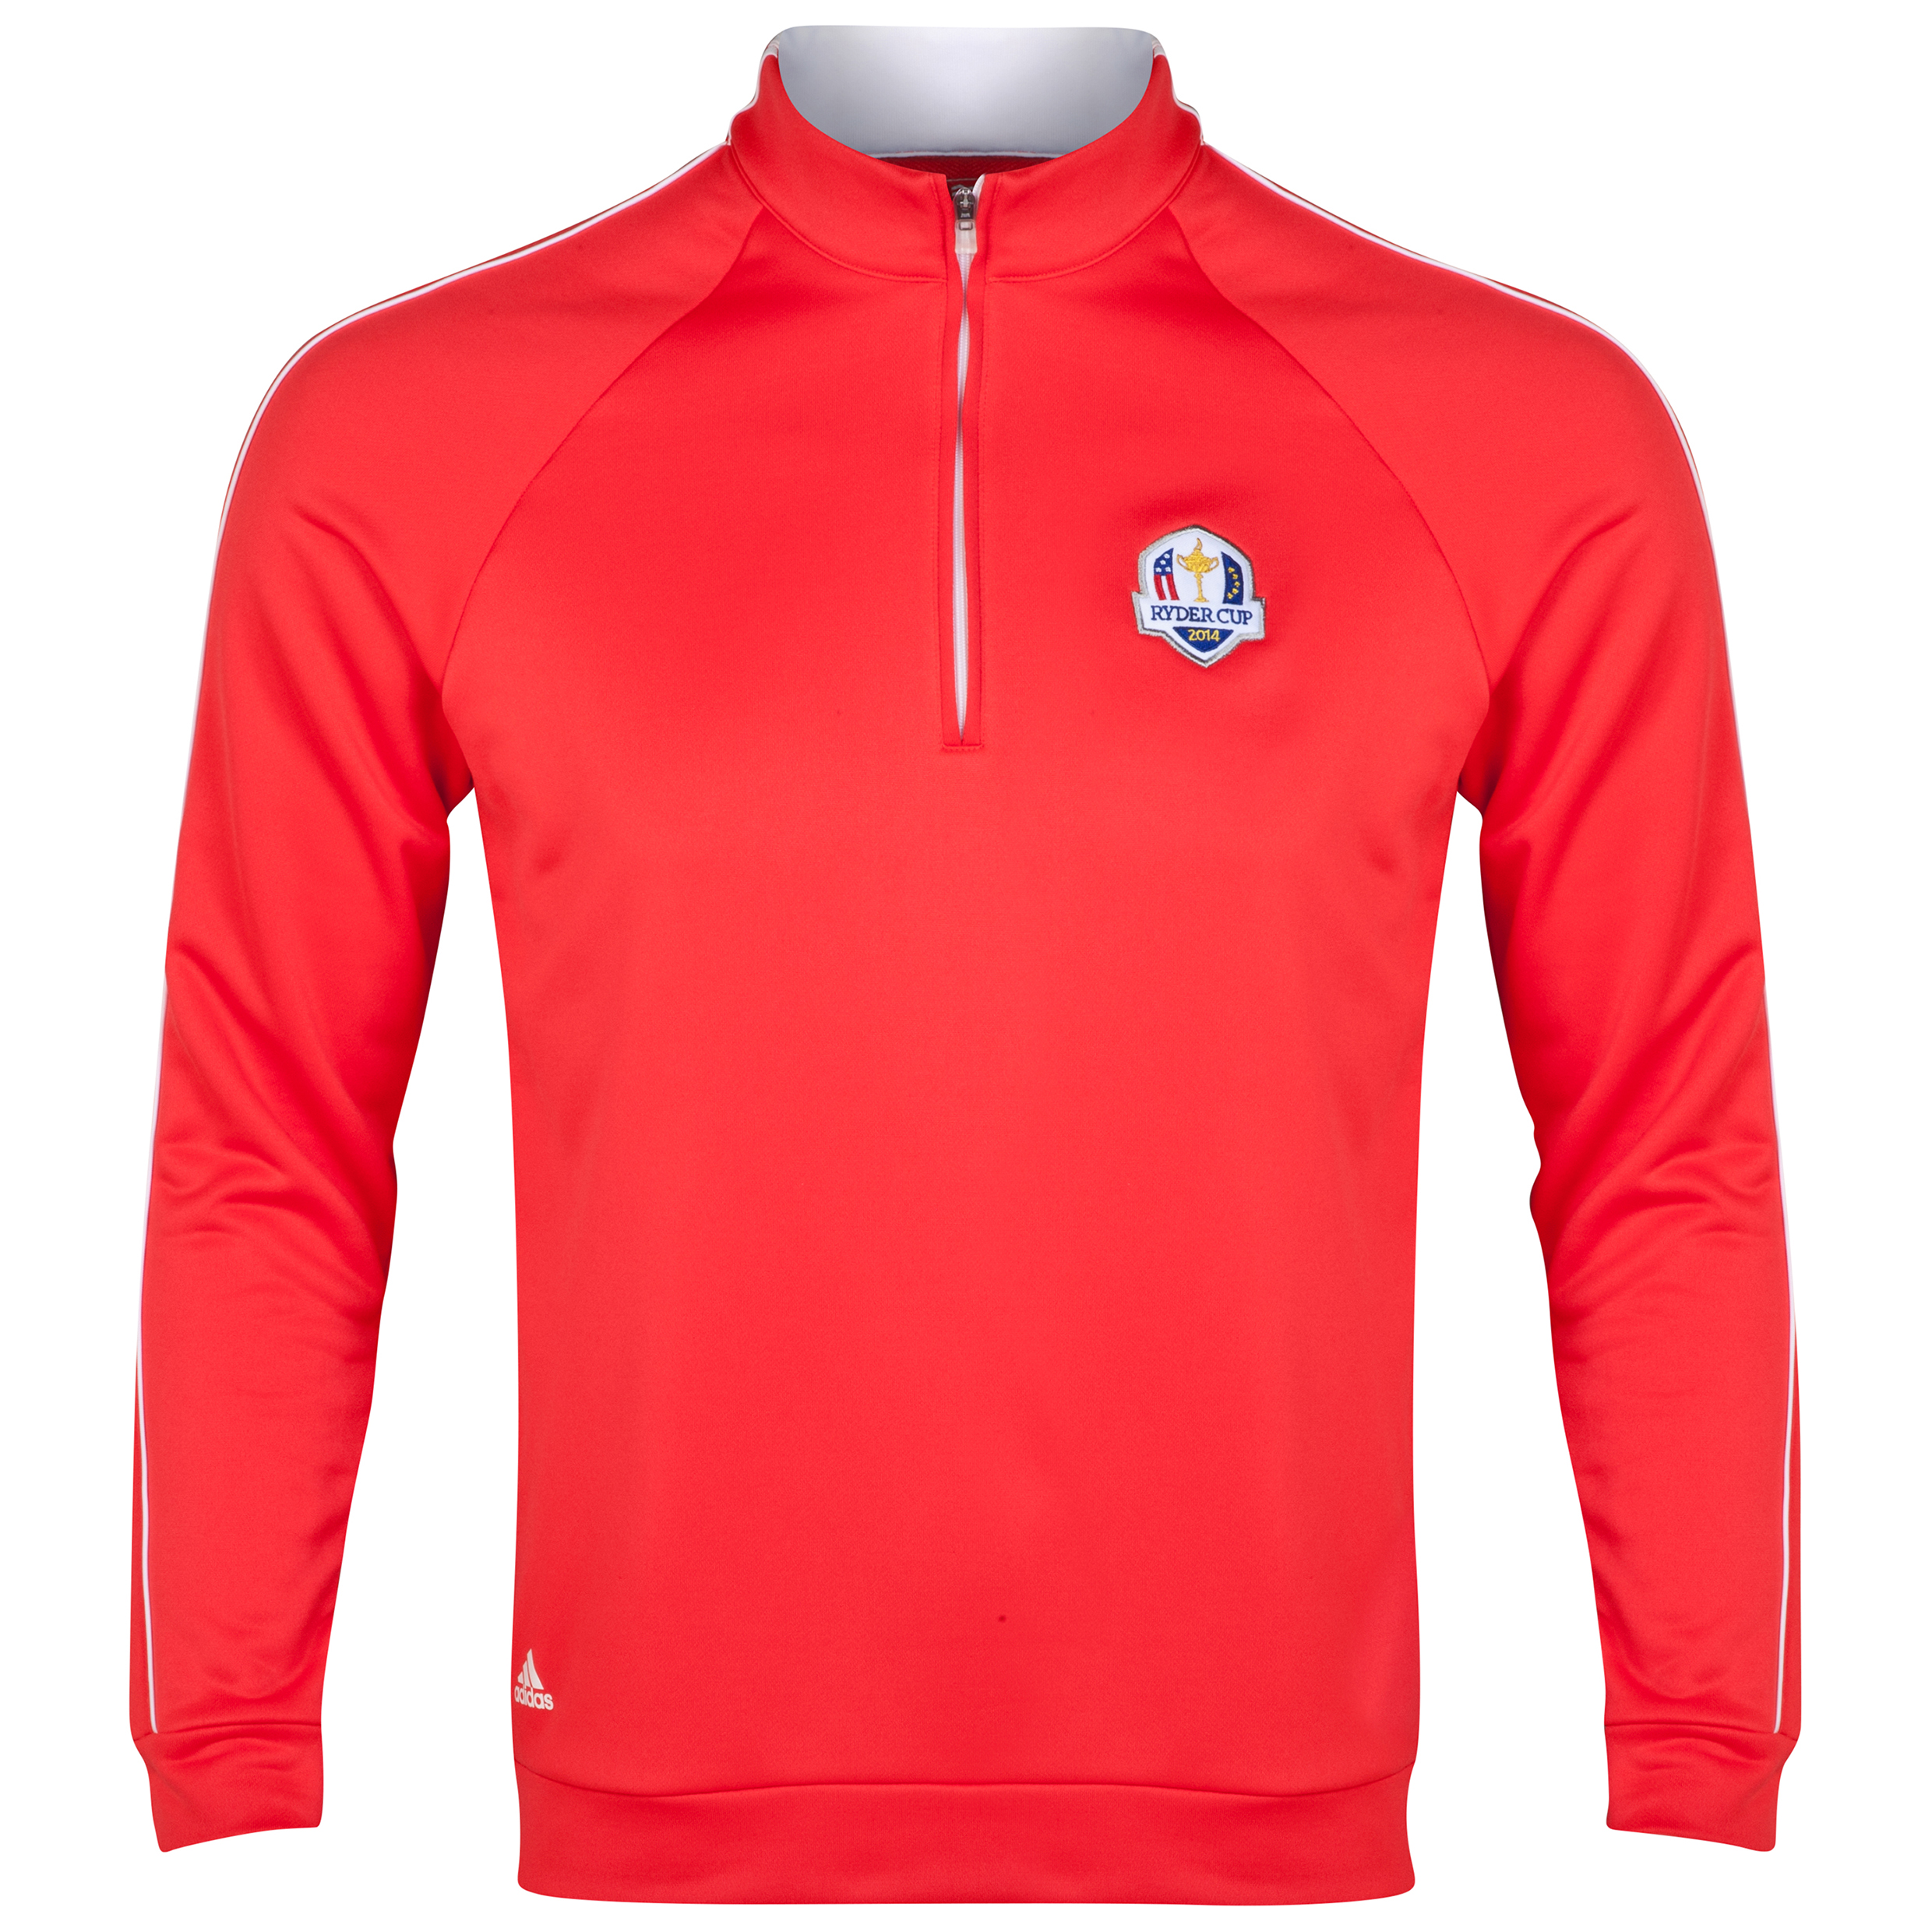 The 2014 Ryder Cup ClimaLite 1/4 Zip Contrast Layering Piece Red